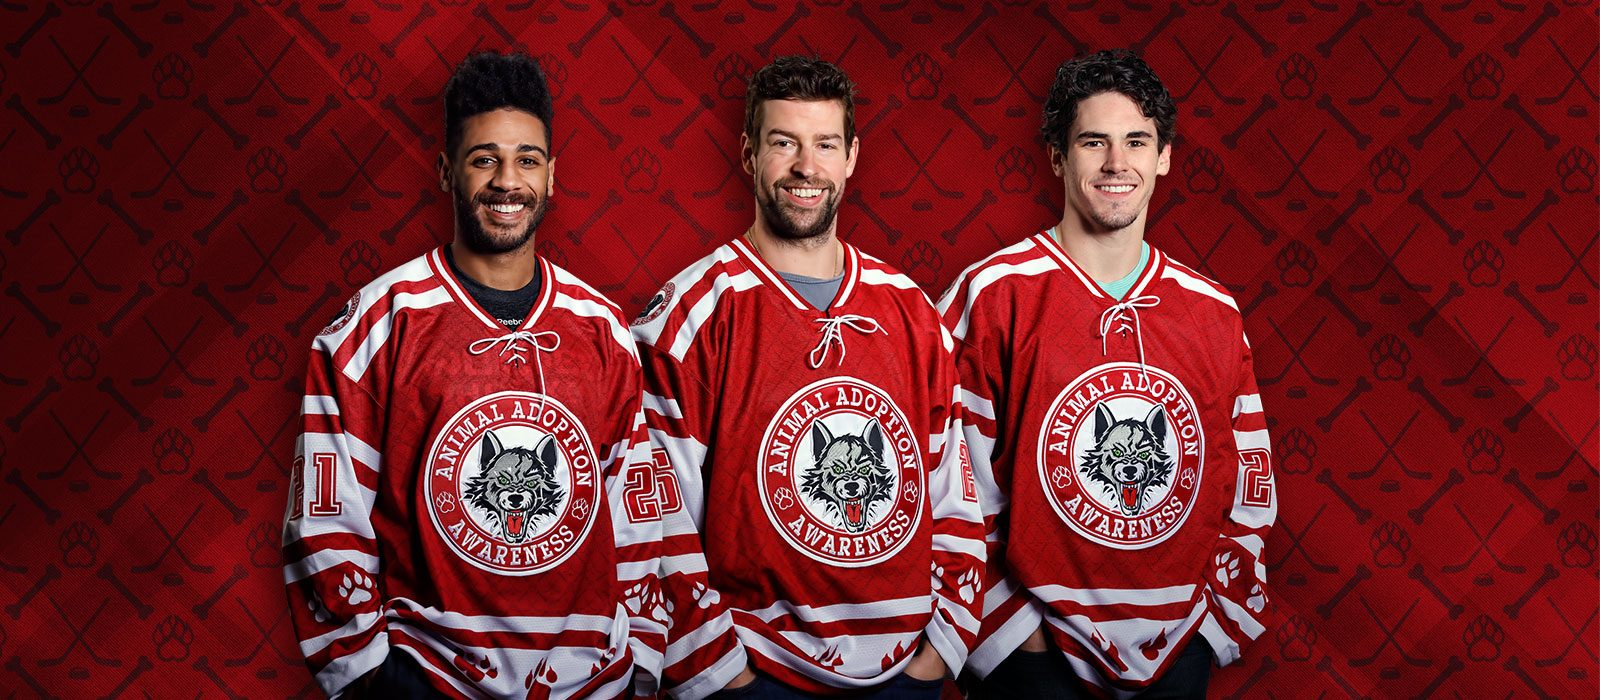 Chicago Wolves Animal Adoption Jerseys